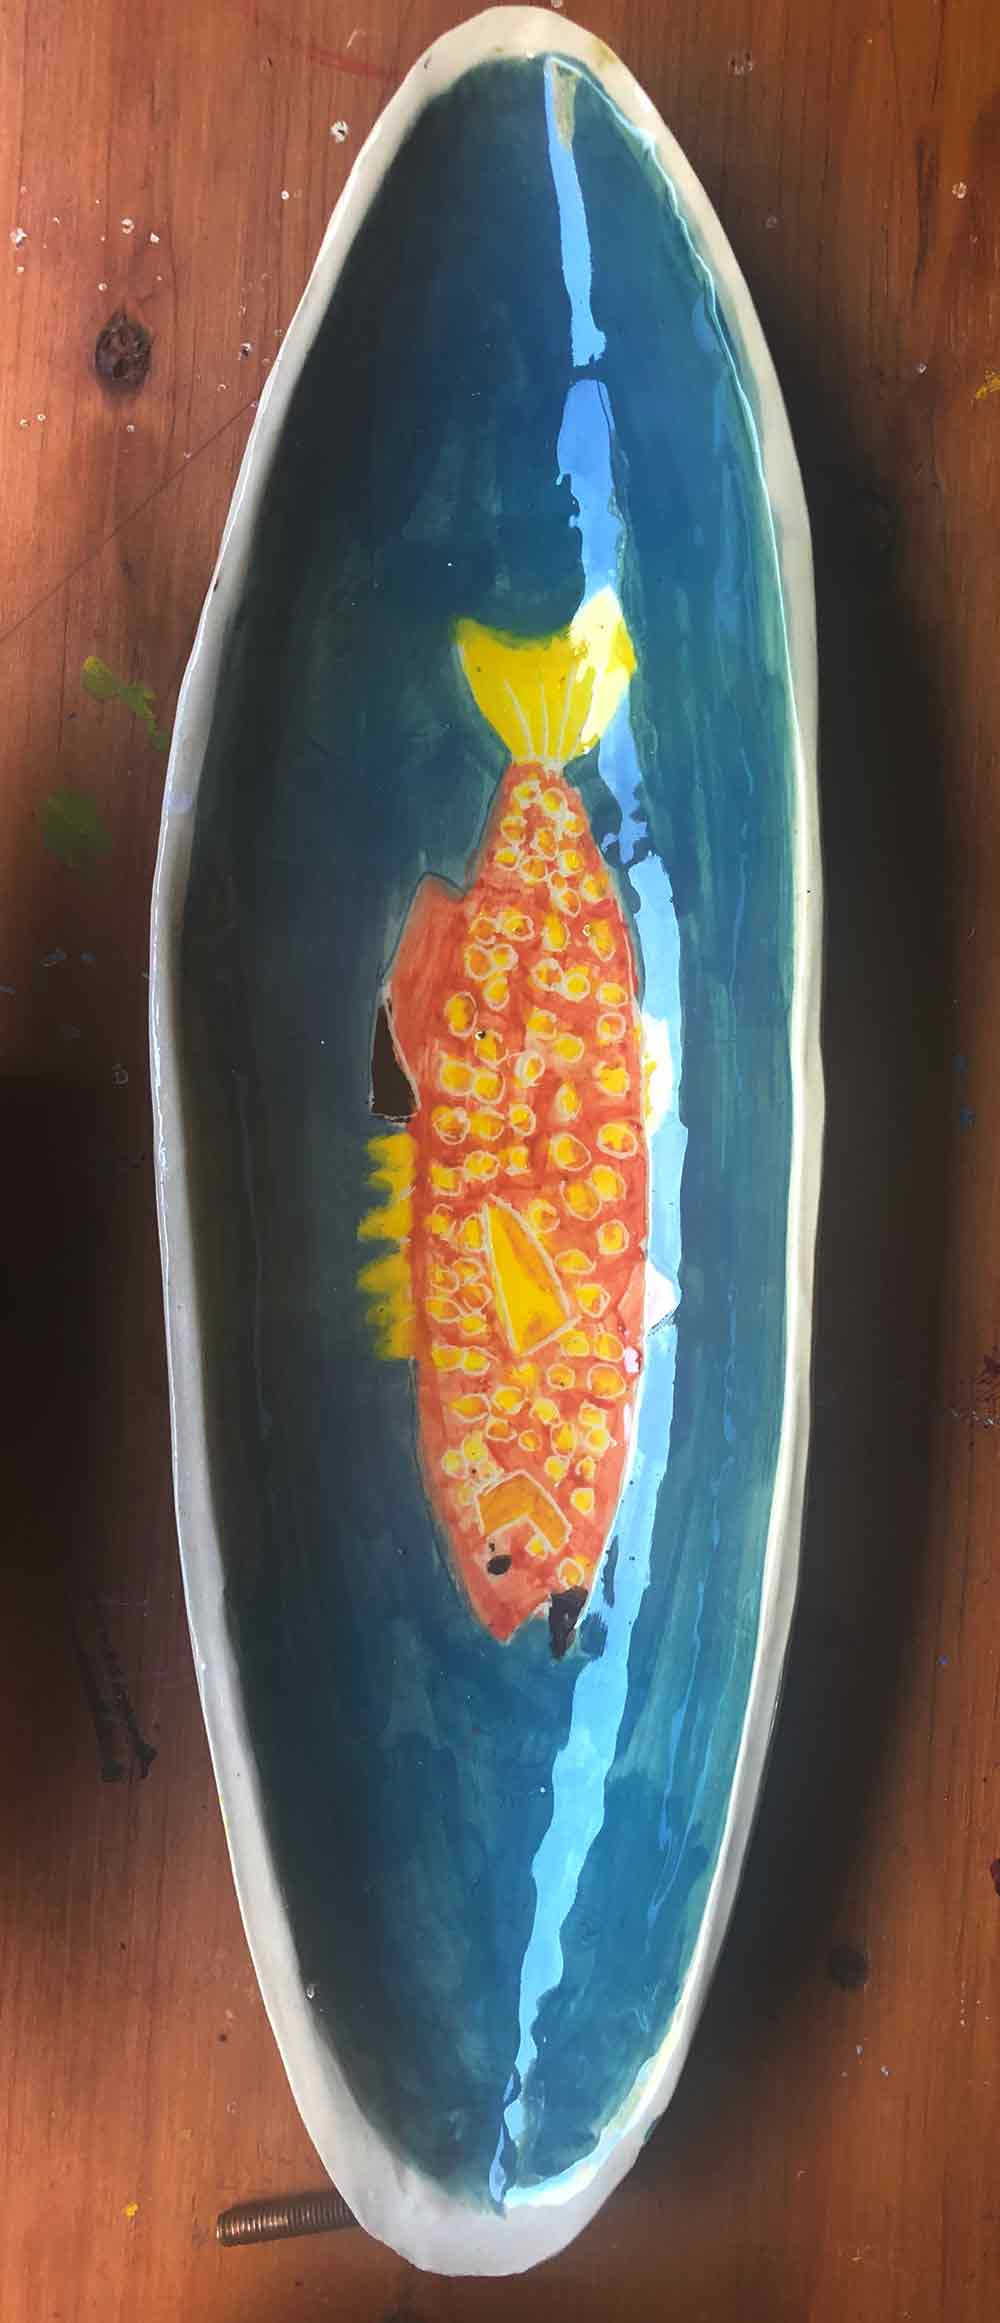 Ceramic salmon dish for serving your fish or snacks. Painted by Zion Levy Stewart Portrait painter and ceramic artist.